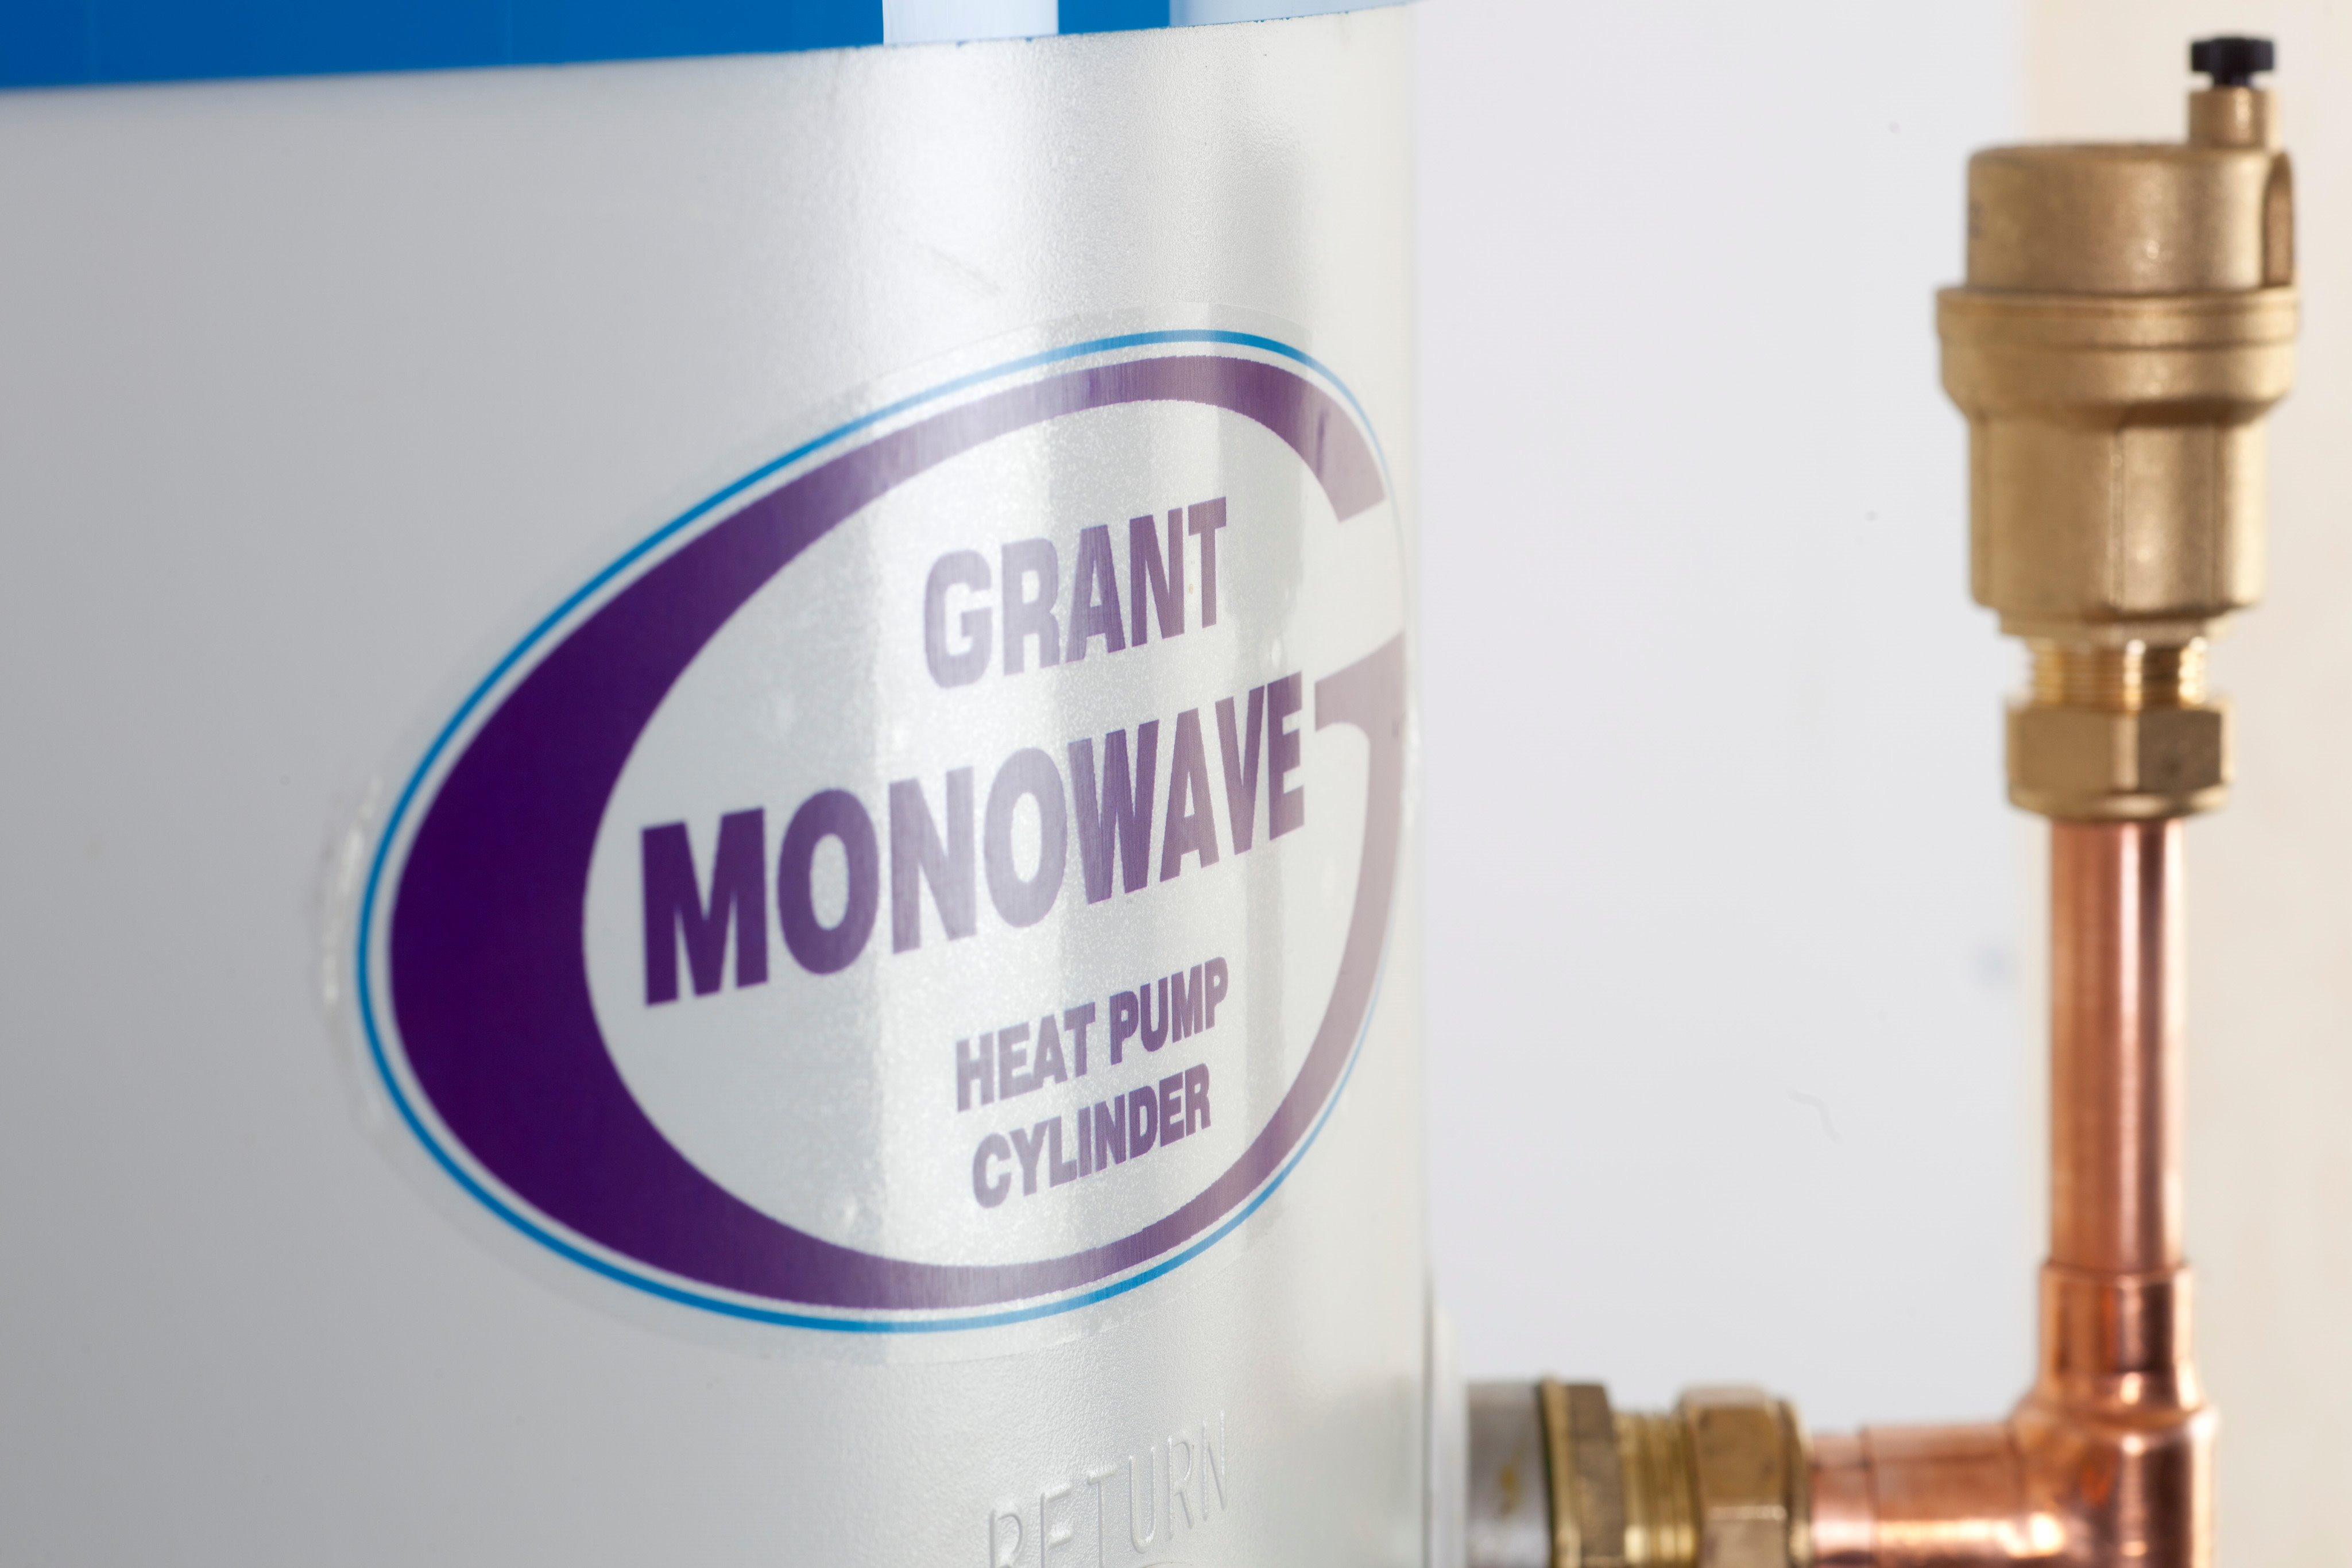 Grant High Performance Wave Cylinders